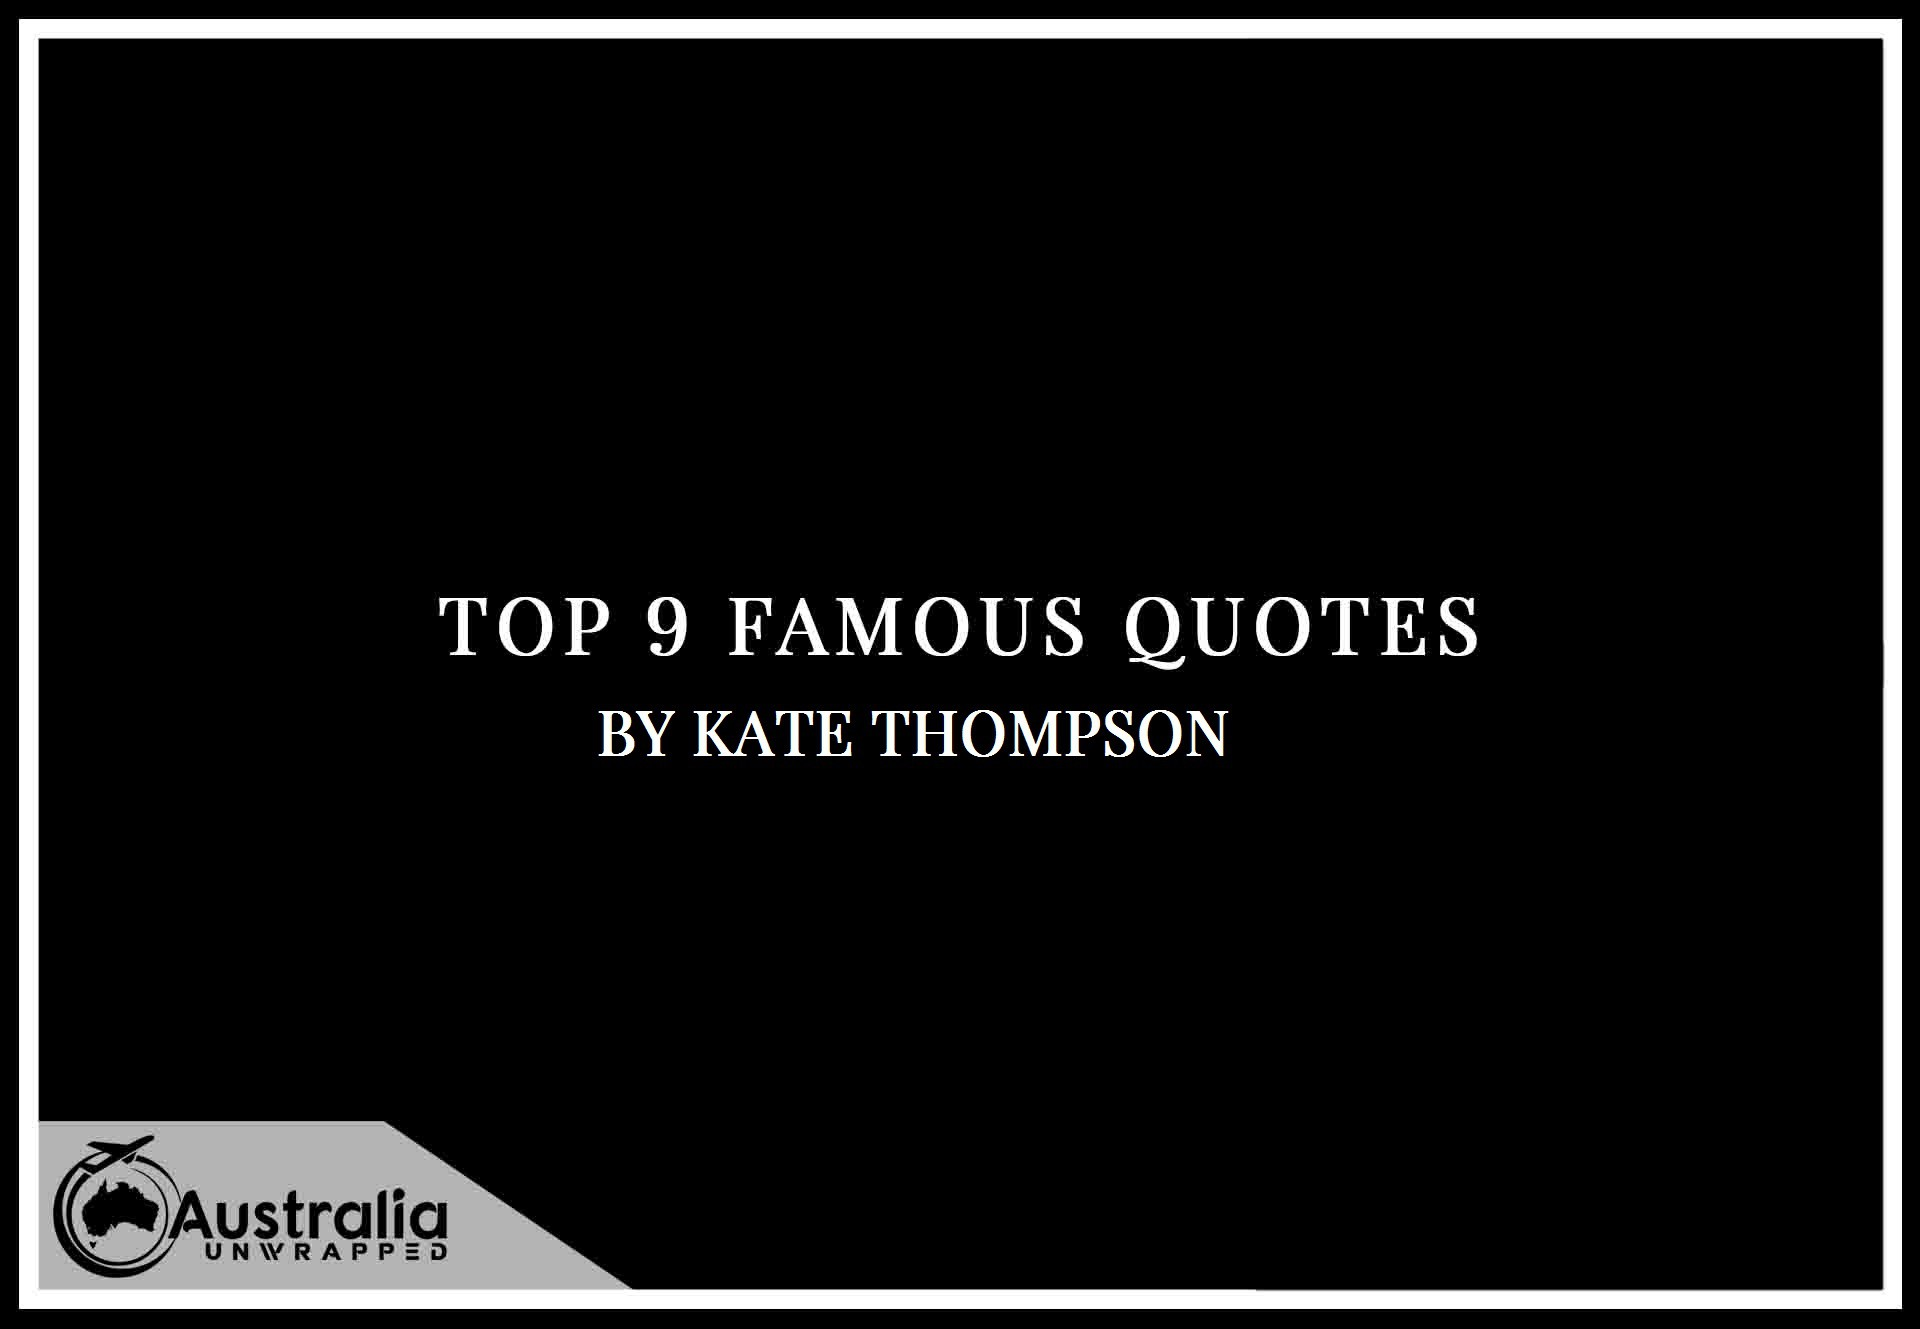 Kate Thompson's Top 9 Popular and Famous Quotes